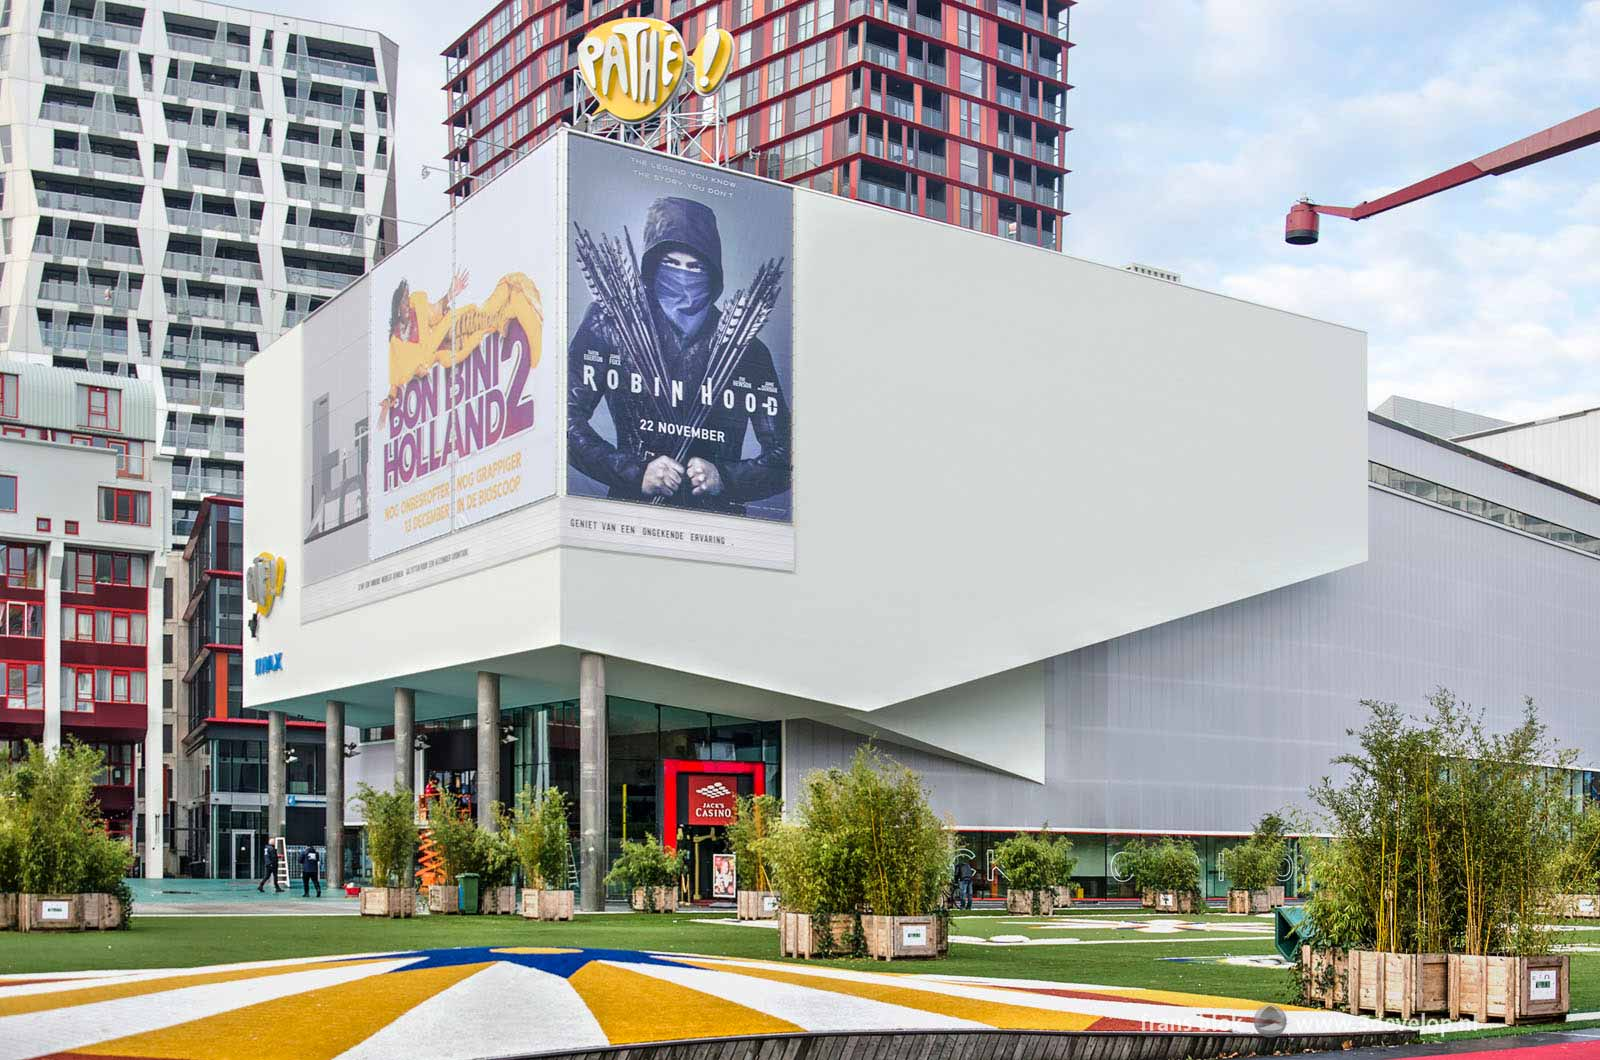 Photo of the Schouwburgplein in Rotterdam, shortly after the completion of the renovation of the Pathé cinema, with film posters of Robin Hood and Bonbini Holland on top of the skyline image